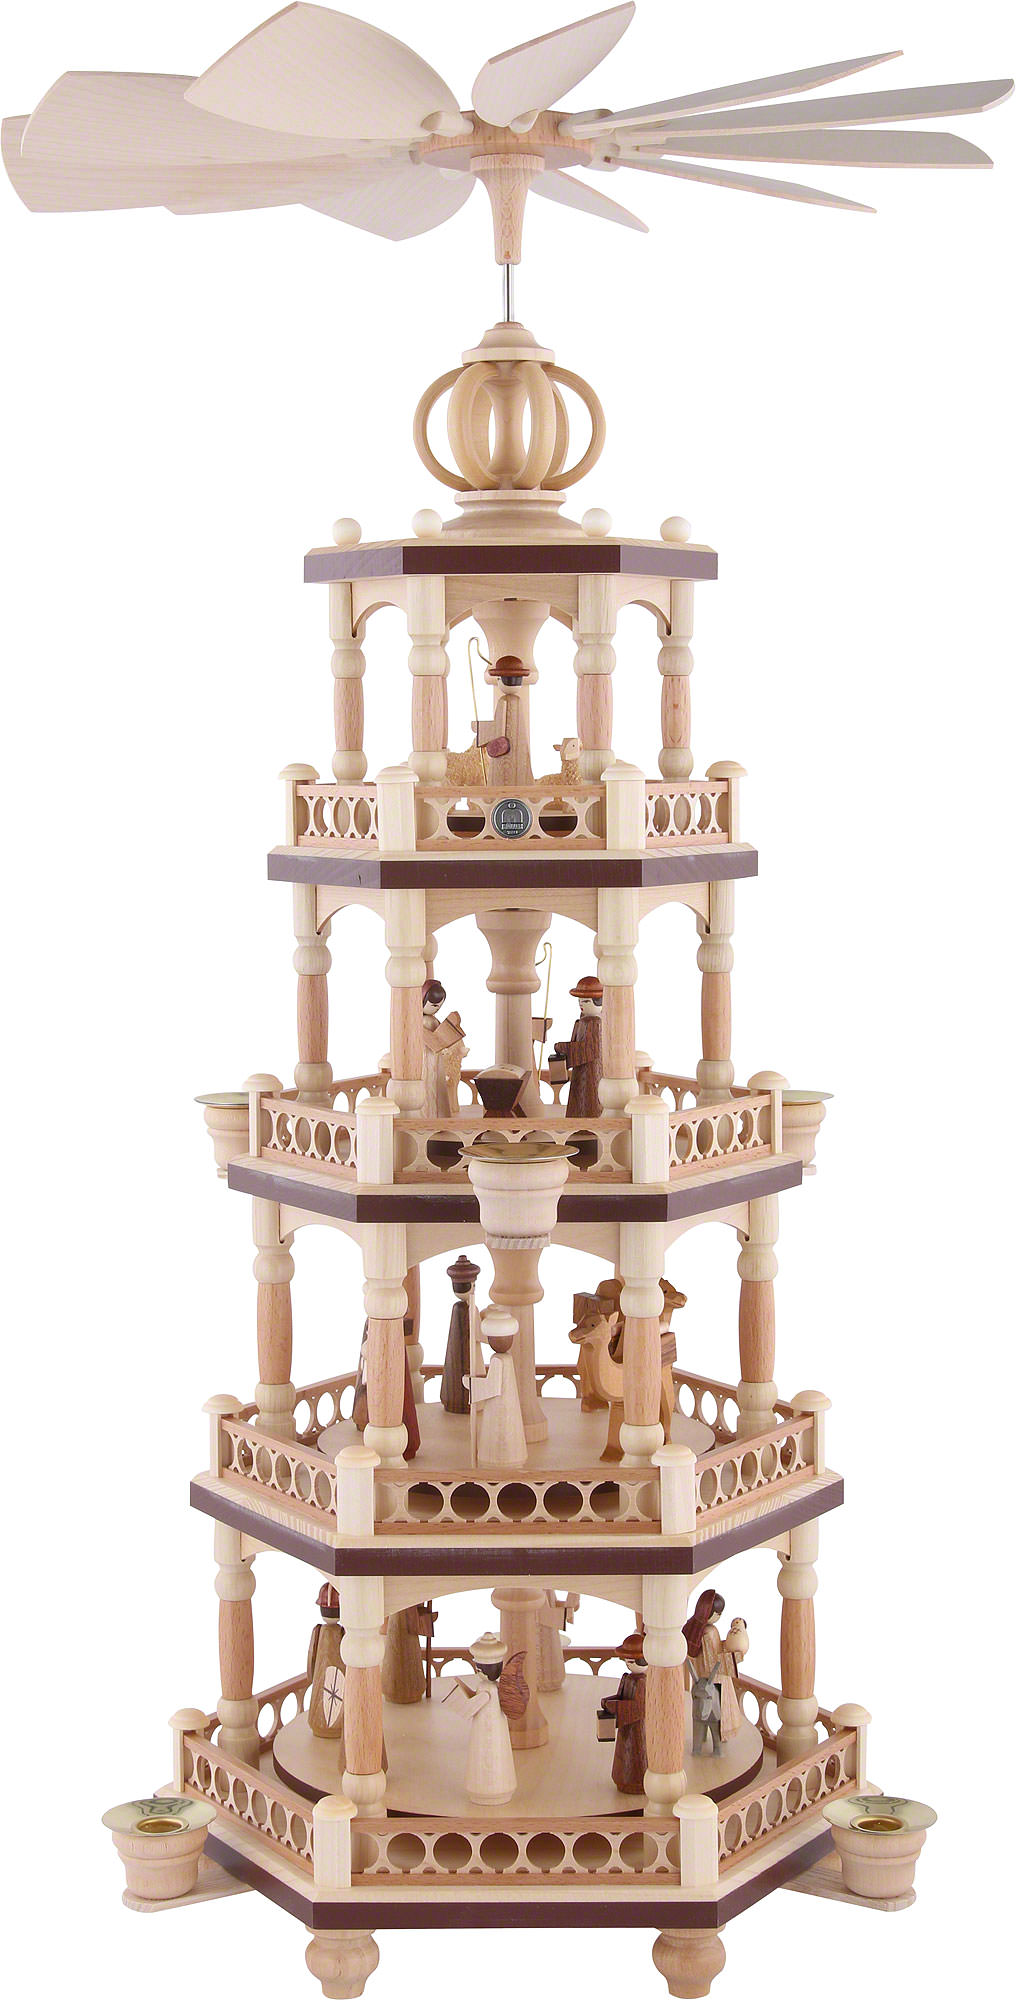 Christmas Pyramid.4 Tier Christmas Pyramid The Christmas Story 64 Cm 25 Inch